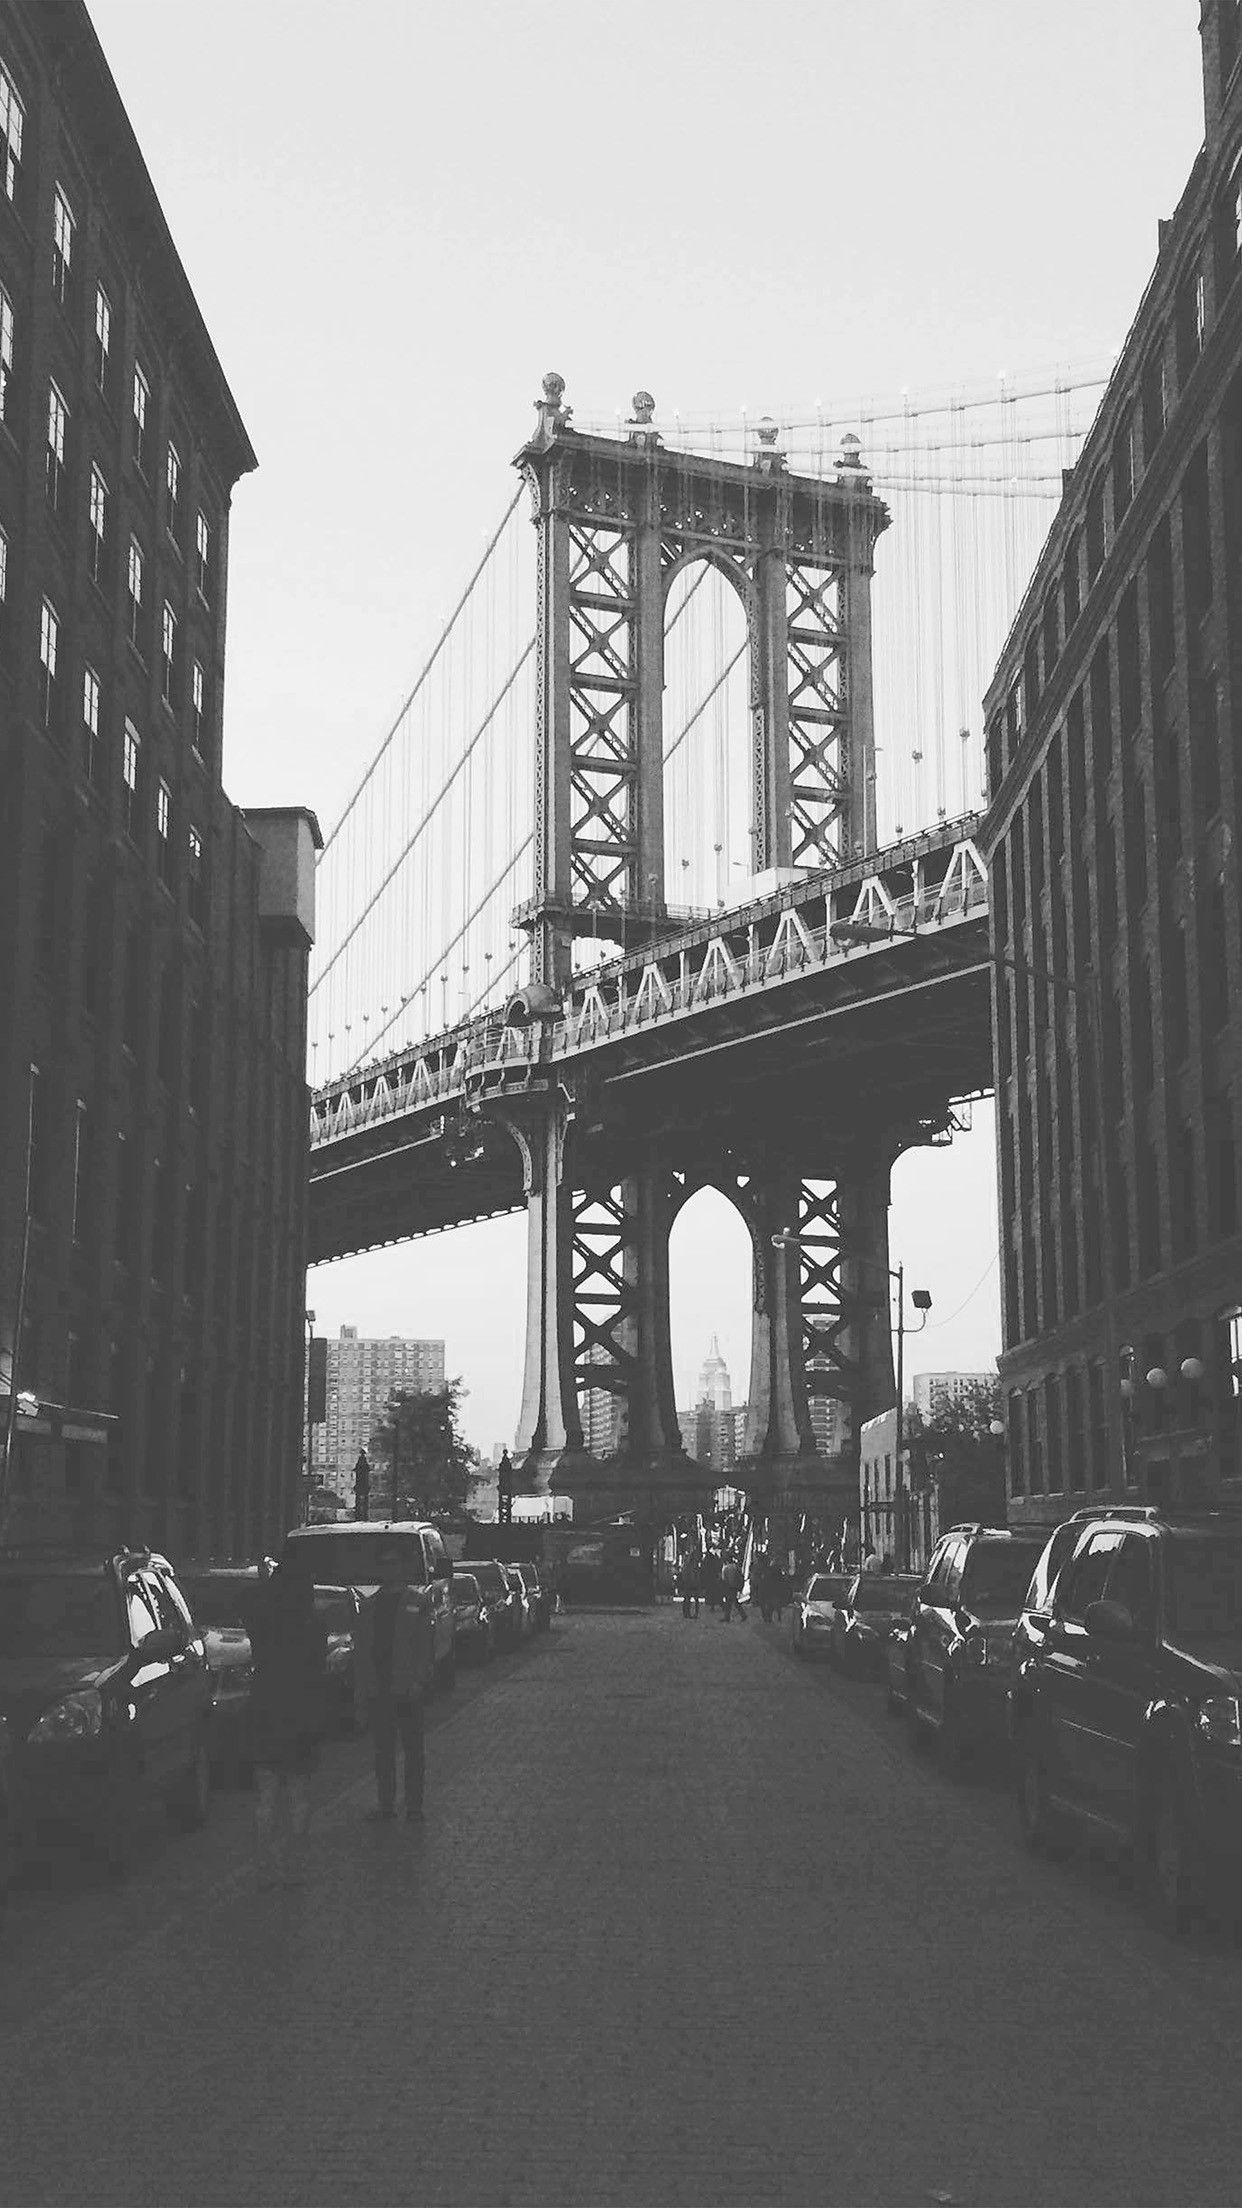 Nyc Black And White Wallpaper 63 Images Black And White Wallpaper Iphone Black And White Wallpaper White Wallpaper For Iphone